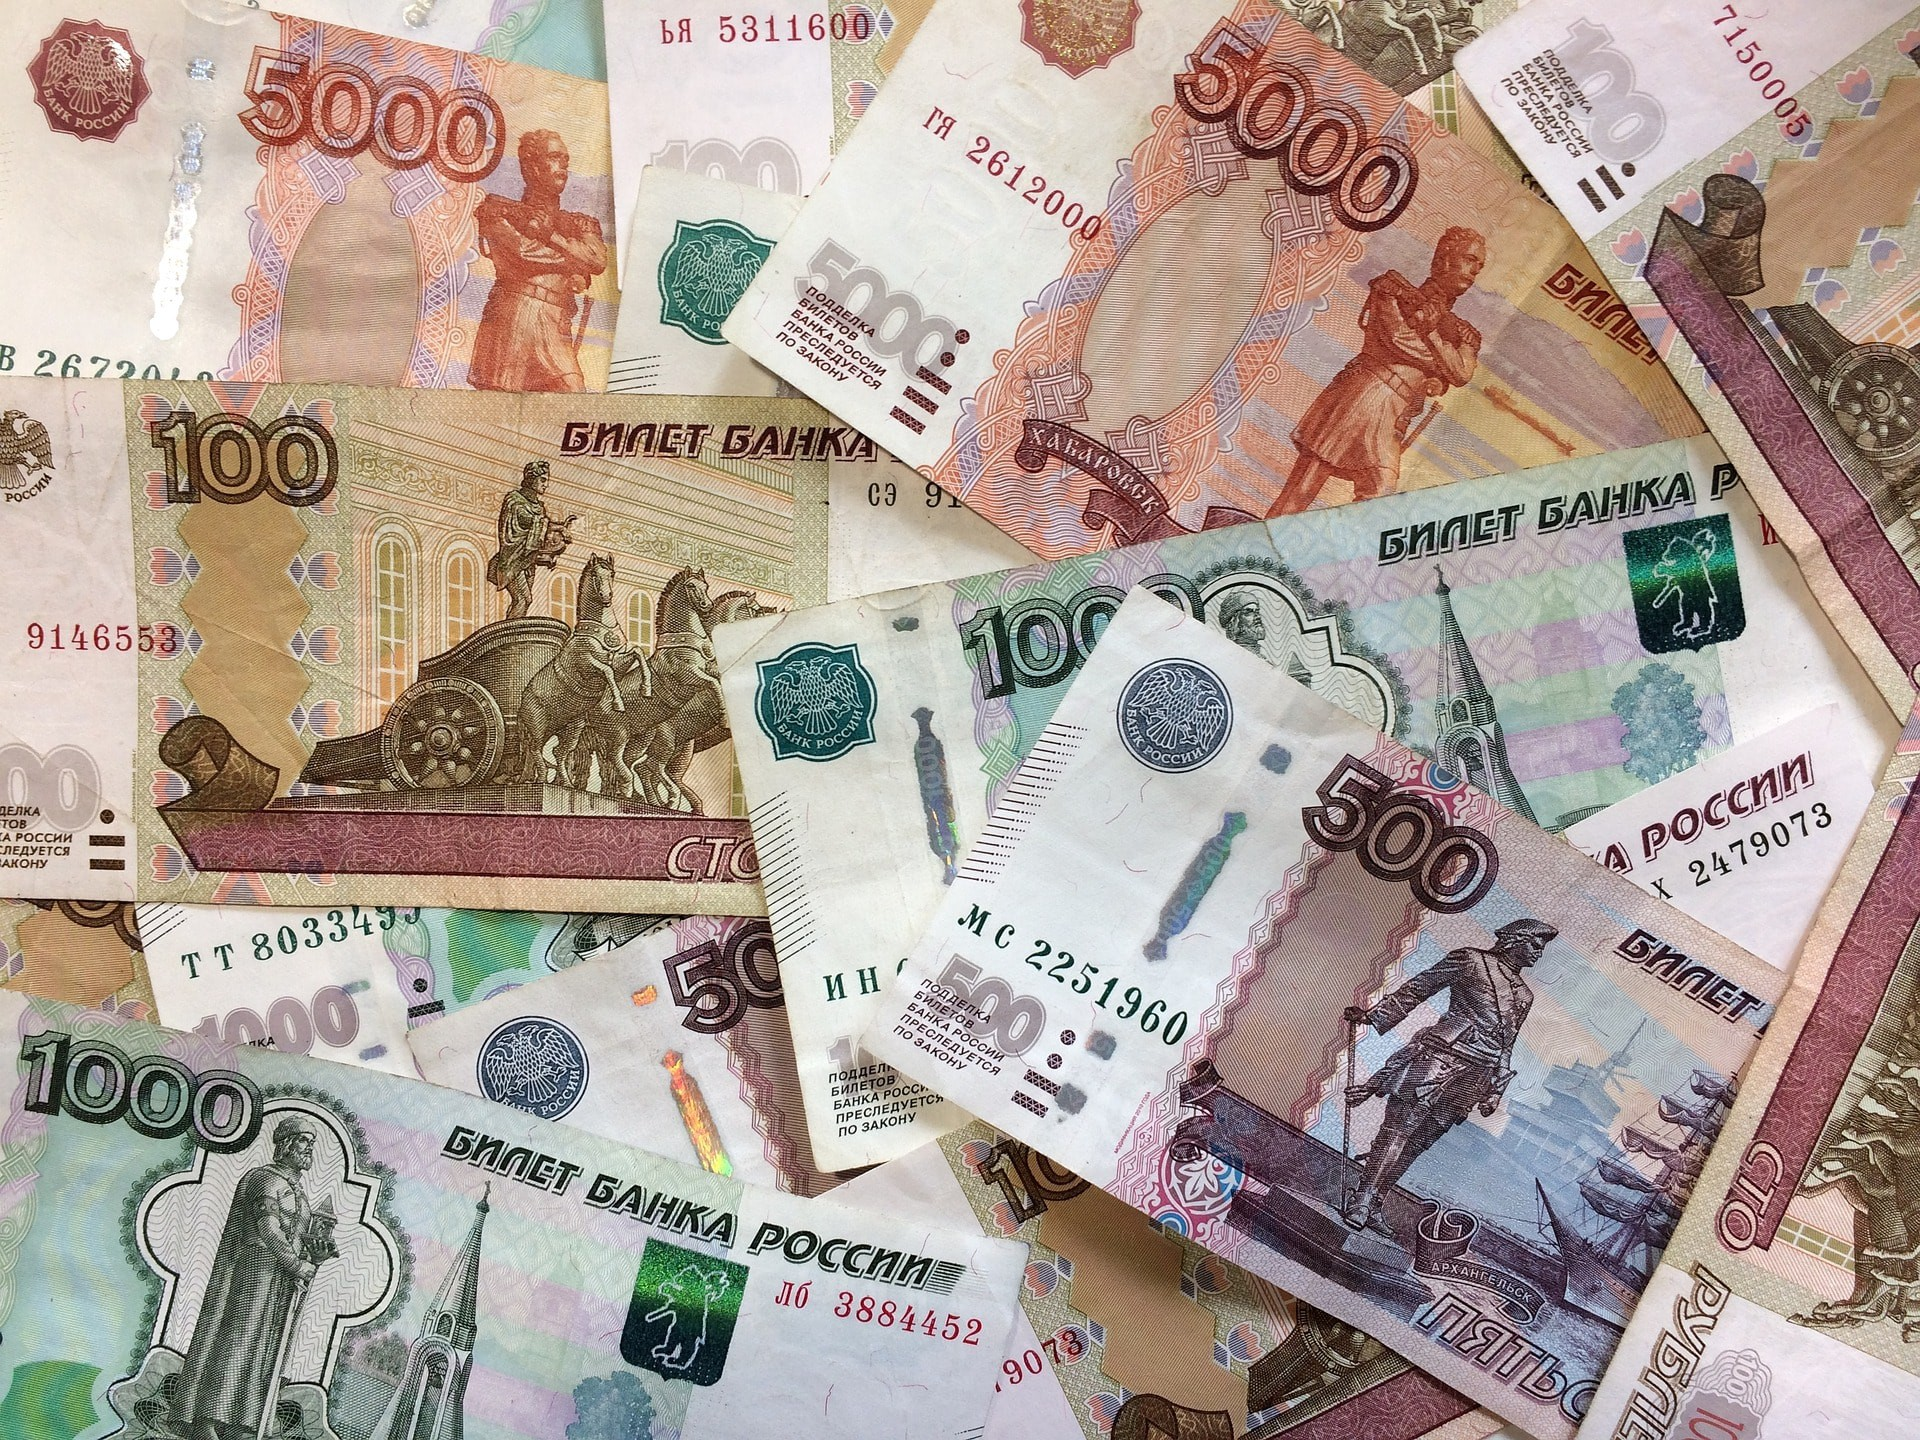 What to give for 500 rubles